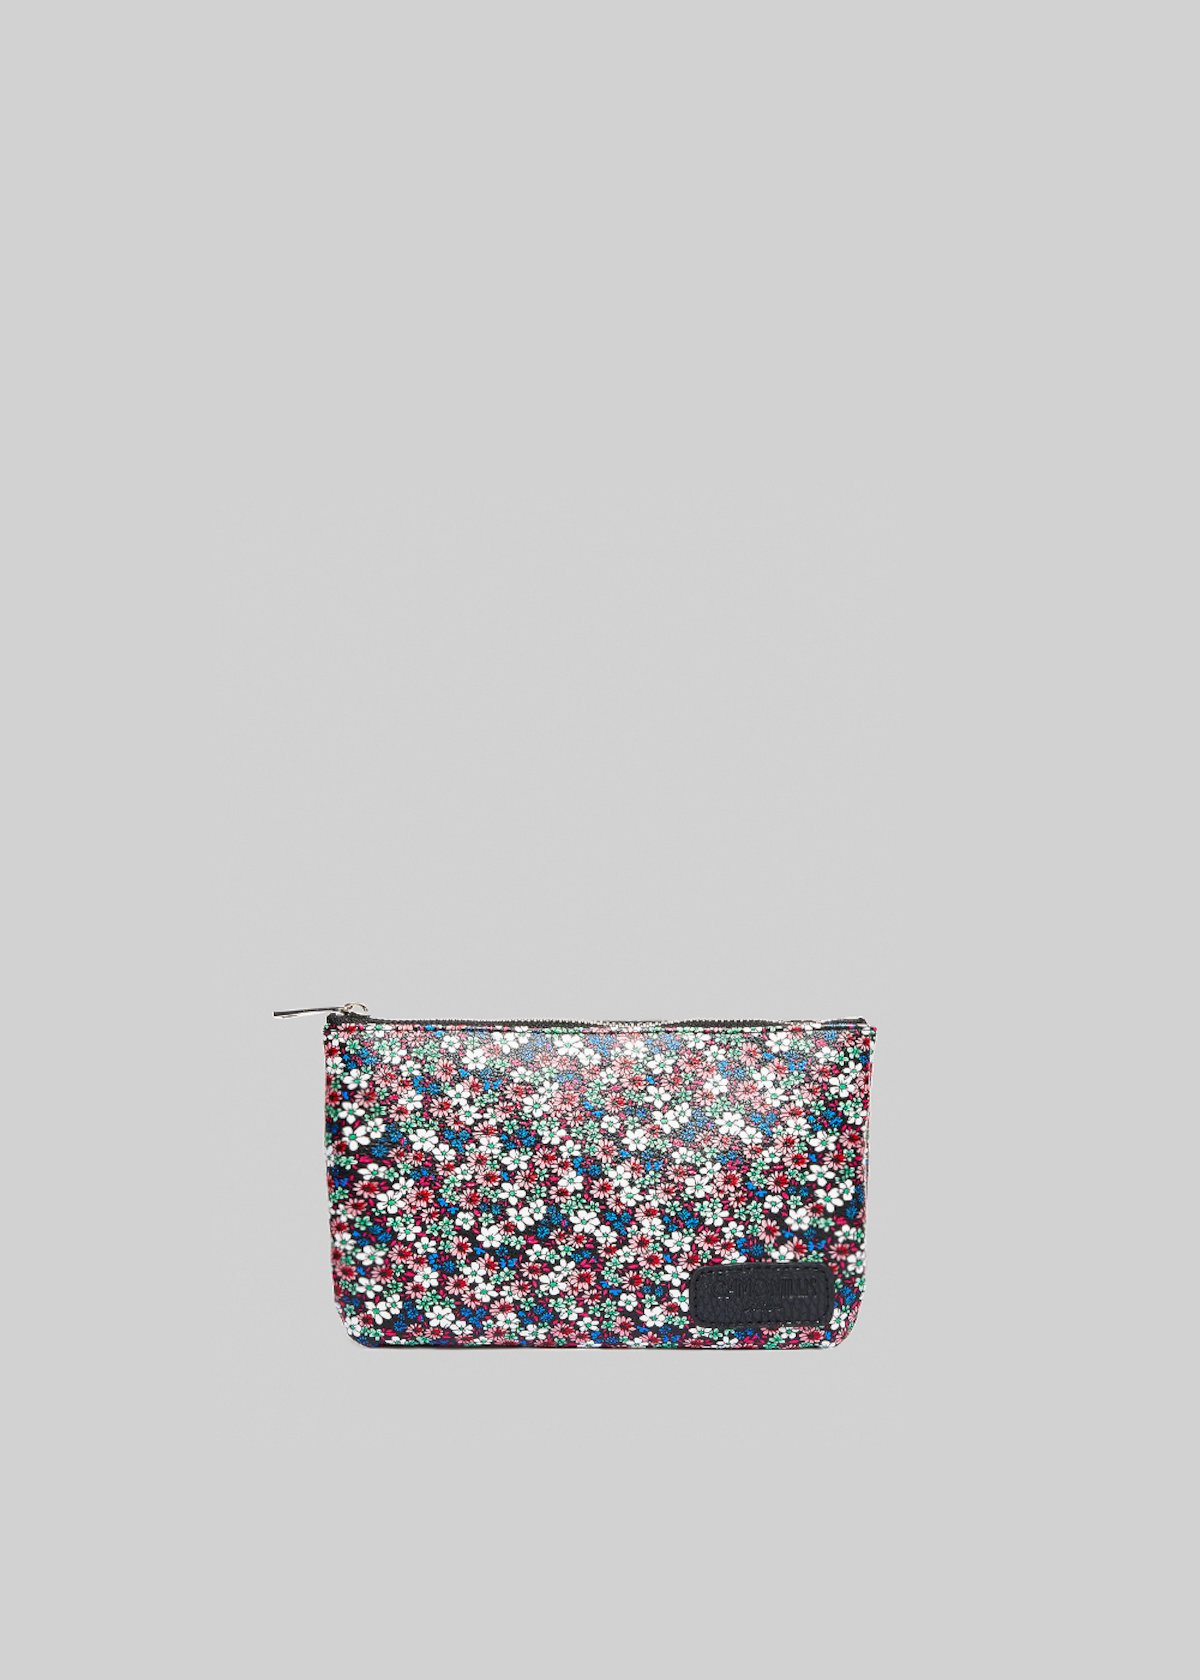 Pochette Tongaflow in ecopelle a tracolla - Black  Fantasia